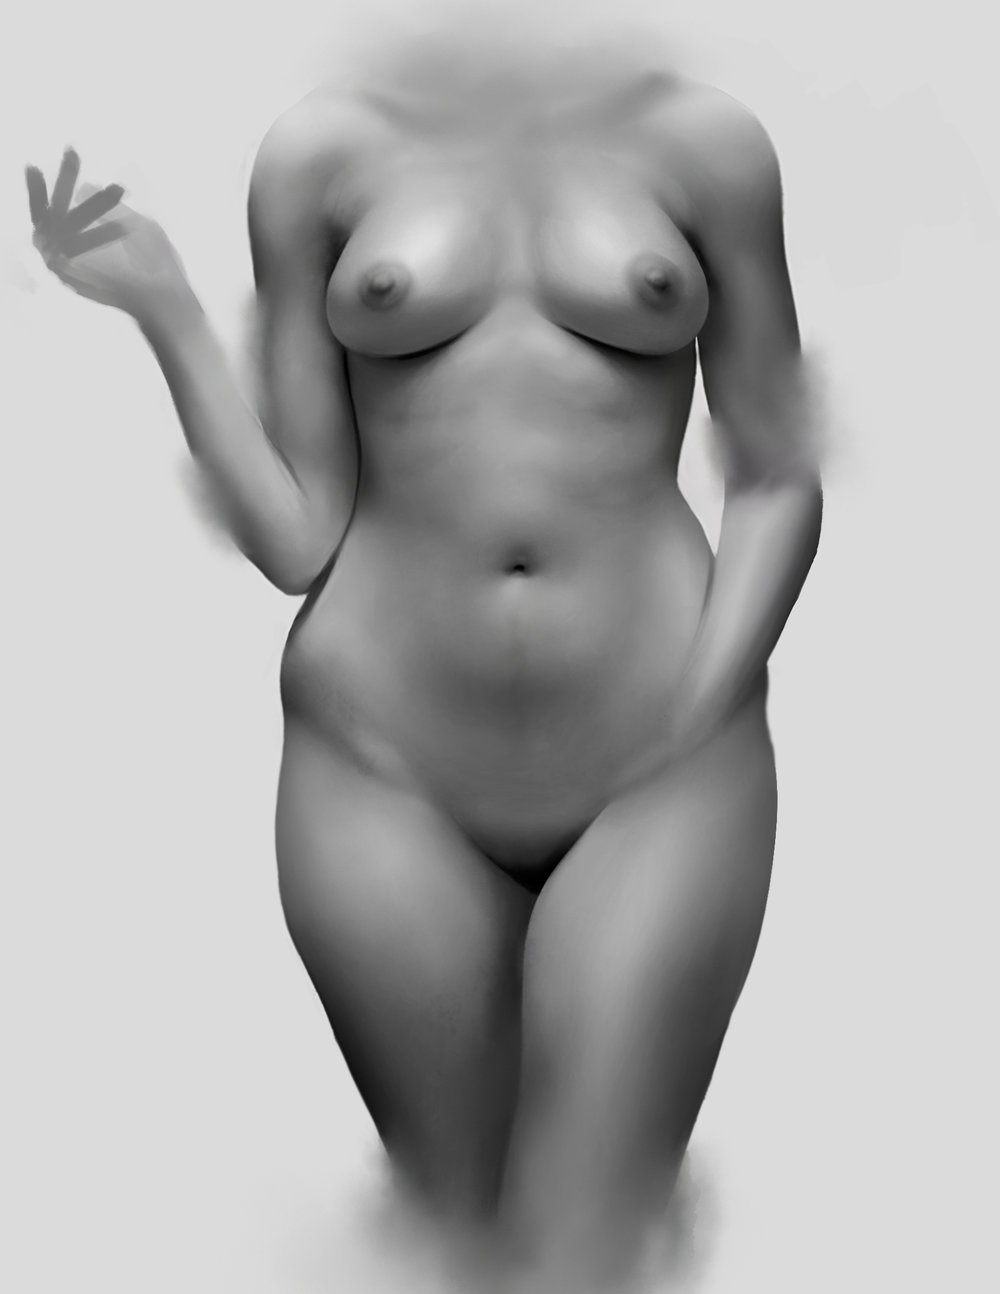 Nude Frontal Figure.jpg